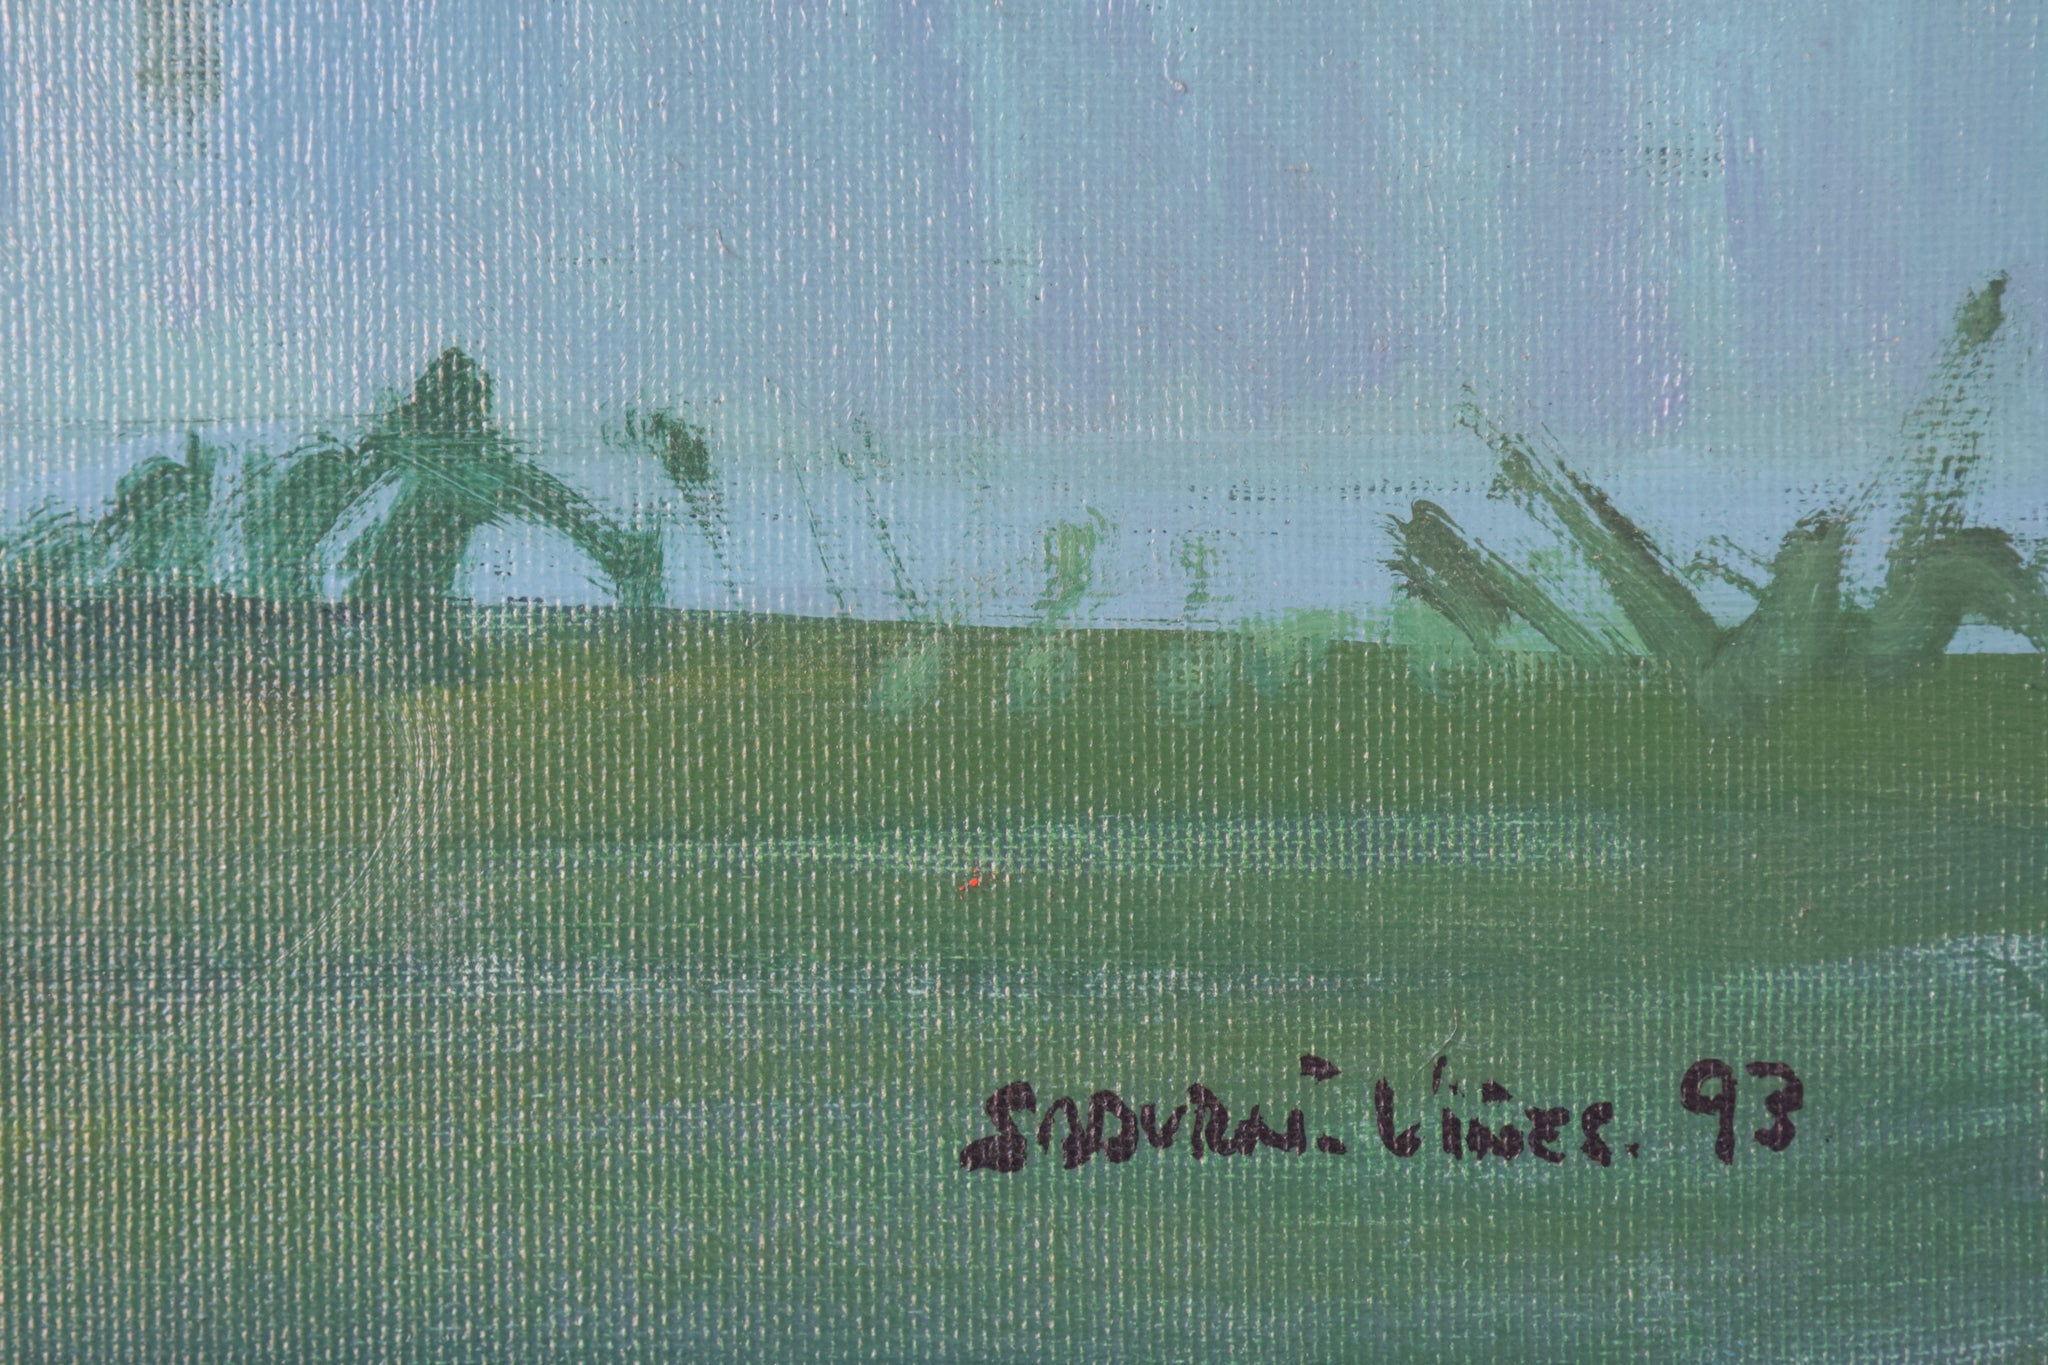 Reflections on the River - Landscape Painting_Signature